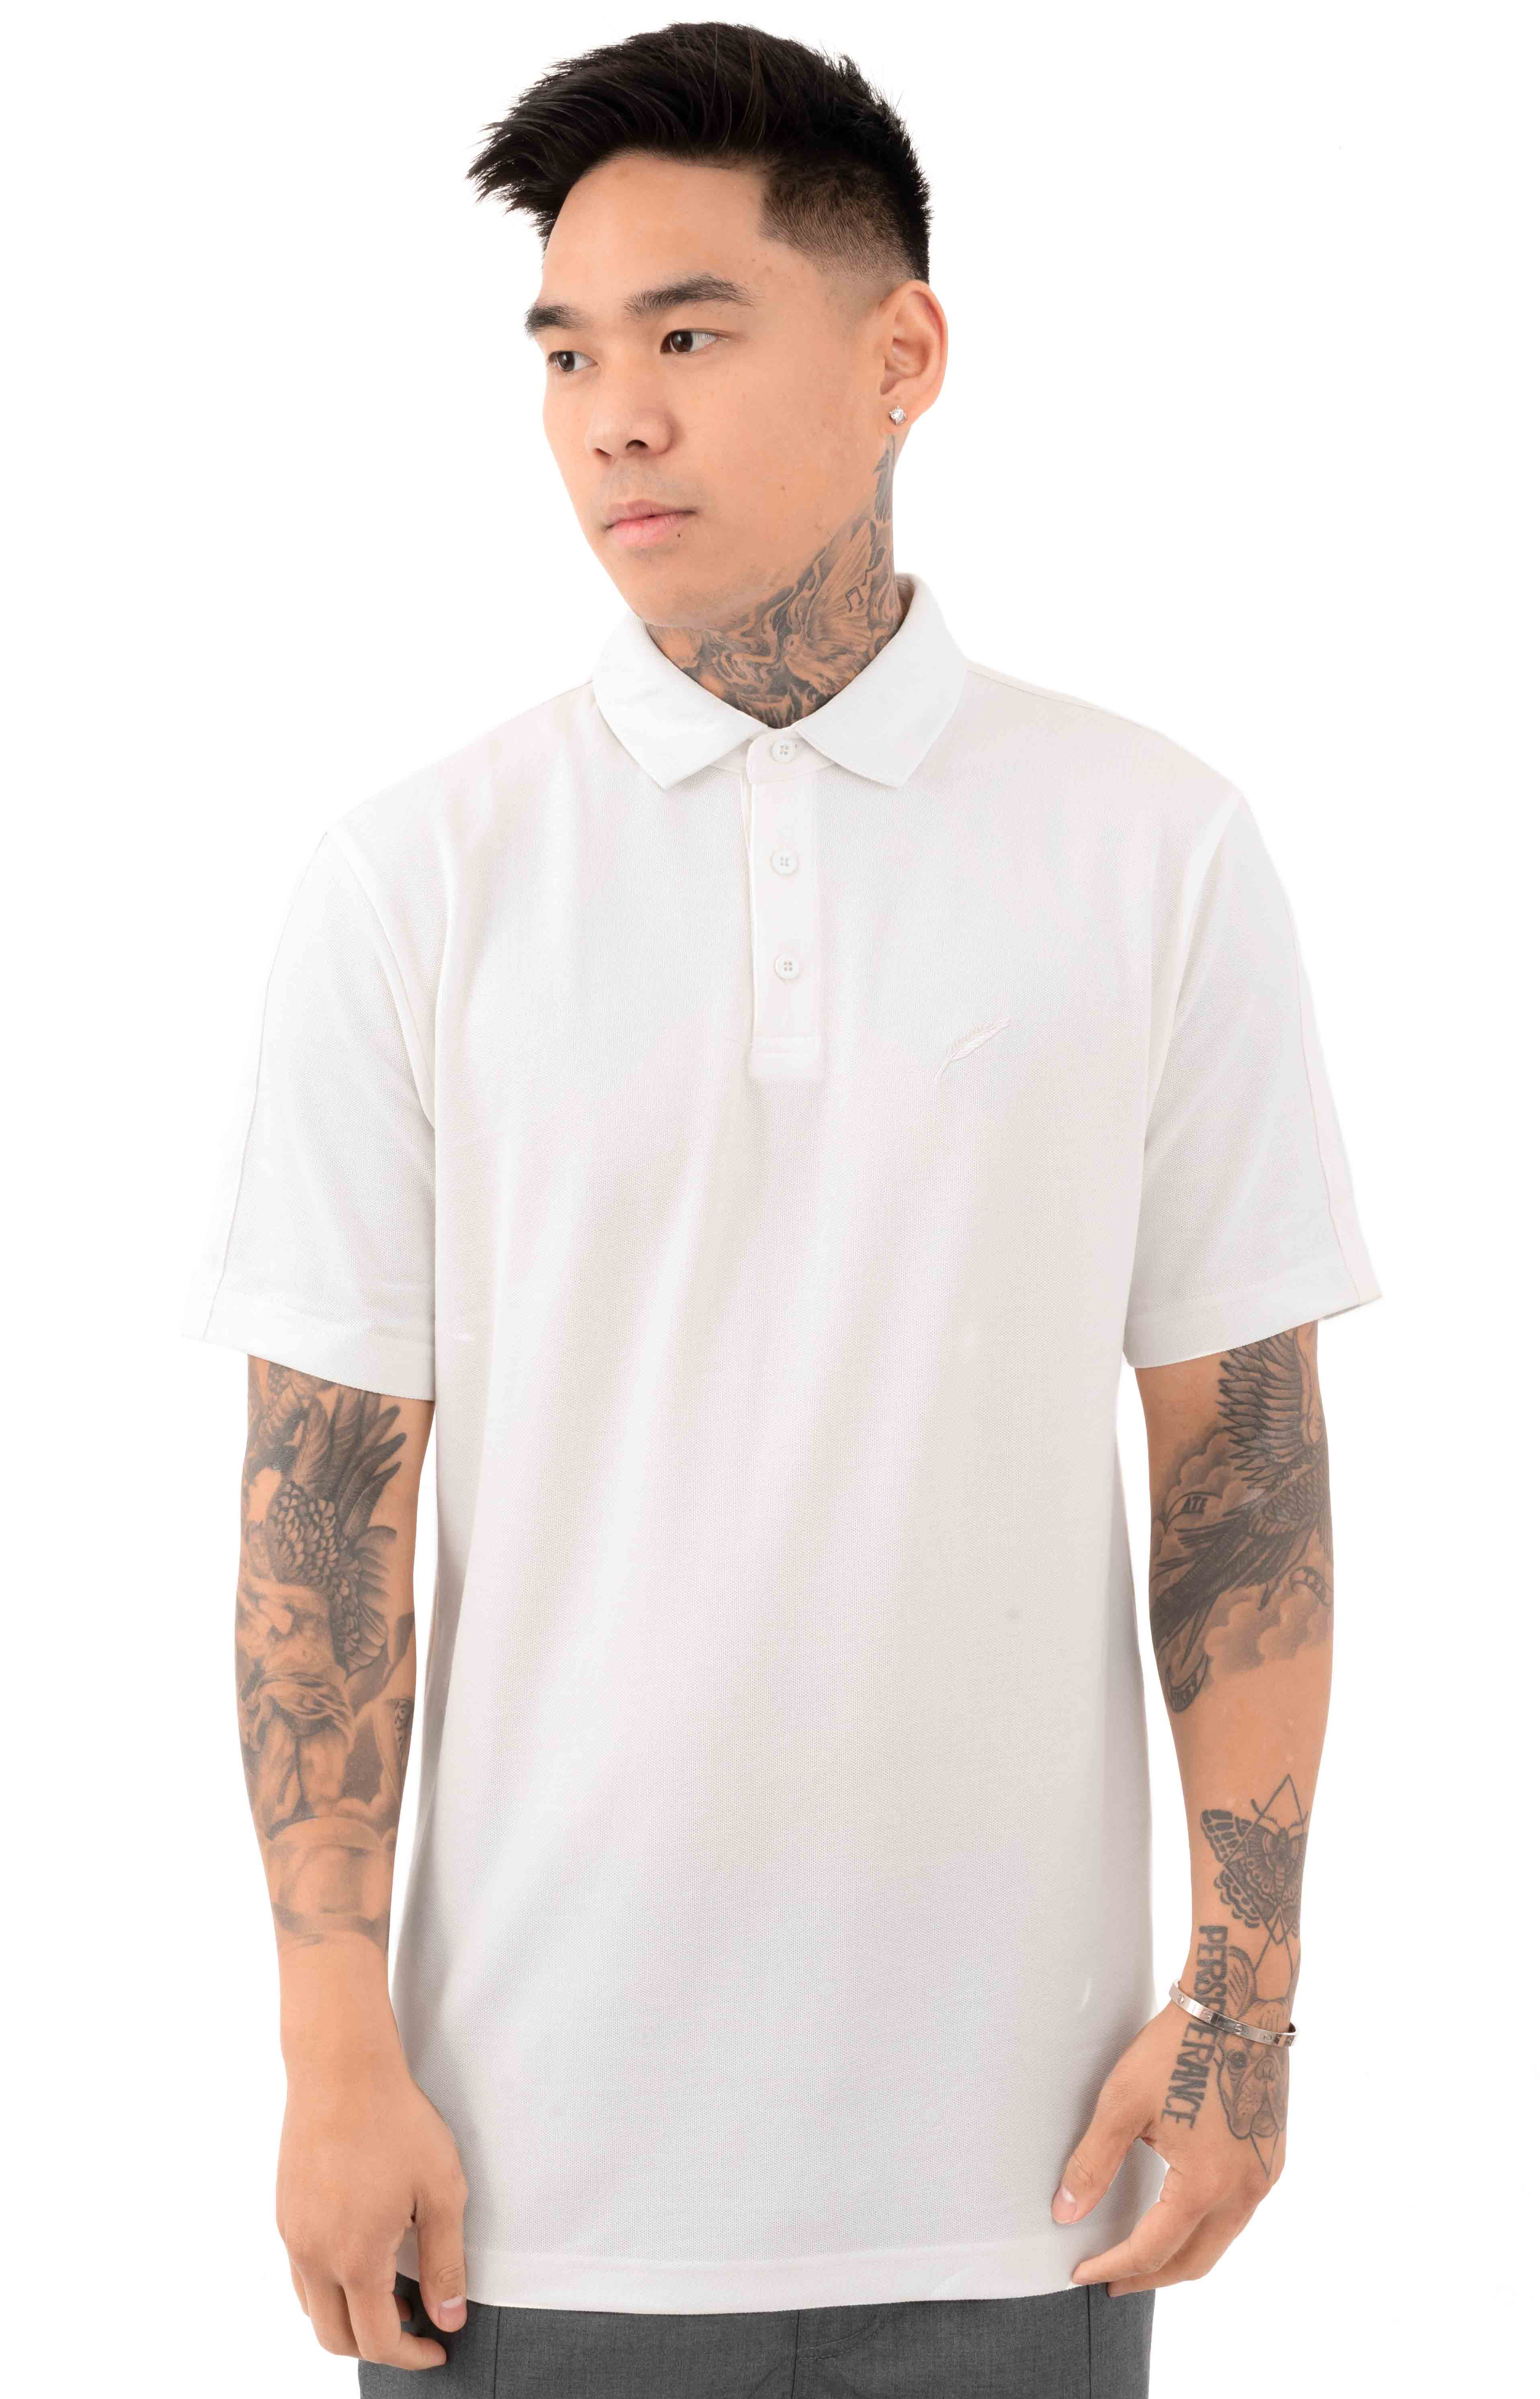 Index S/S Polo Shirt - White